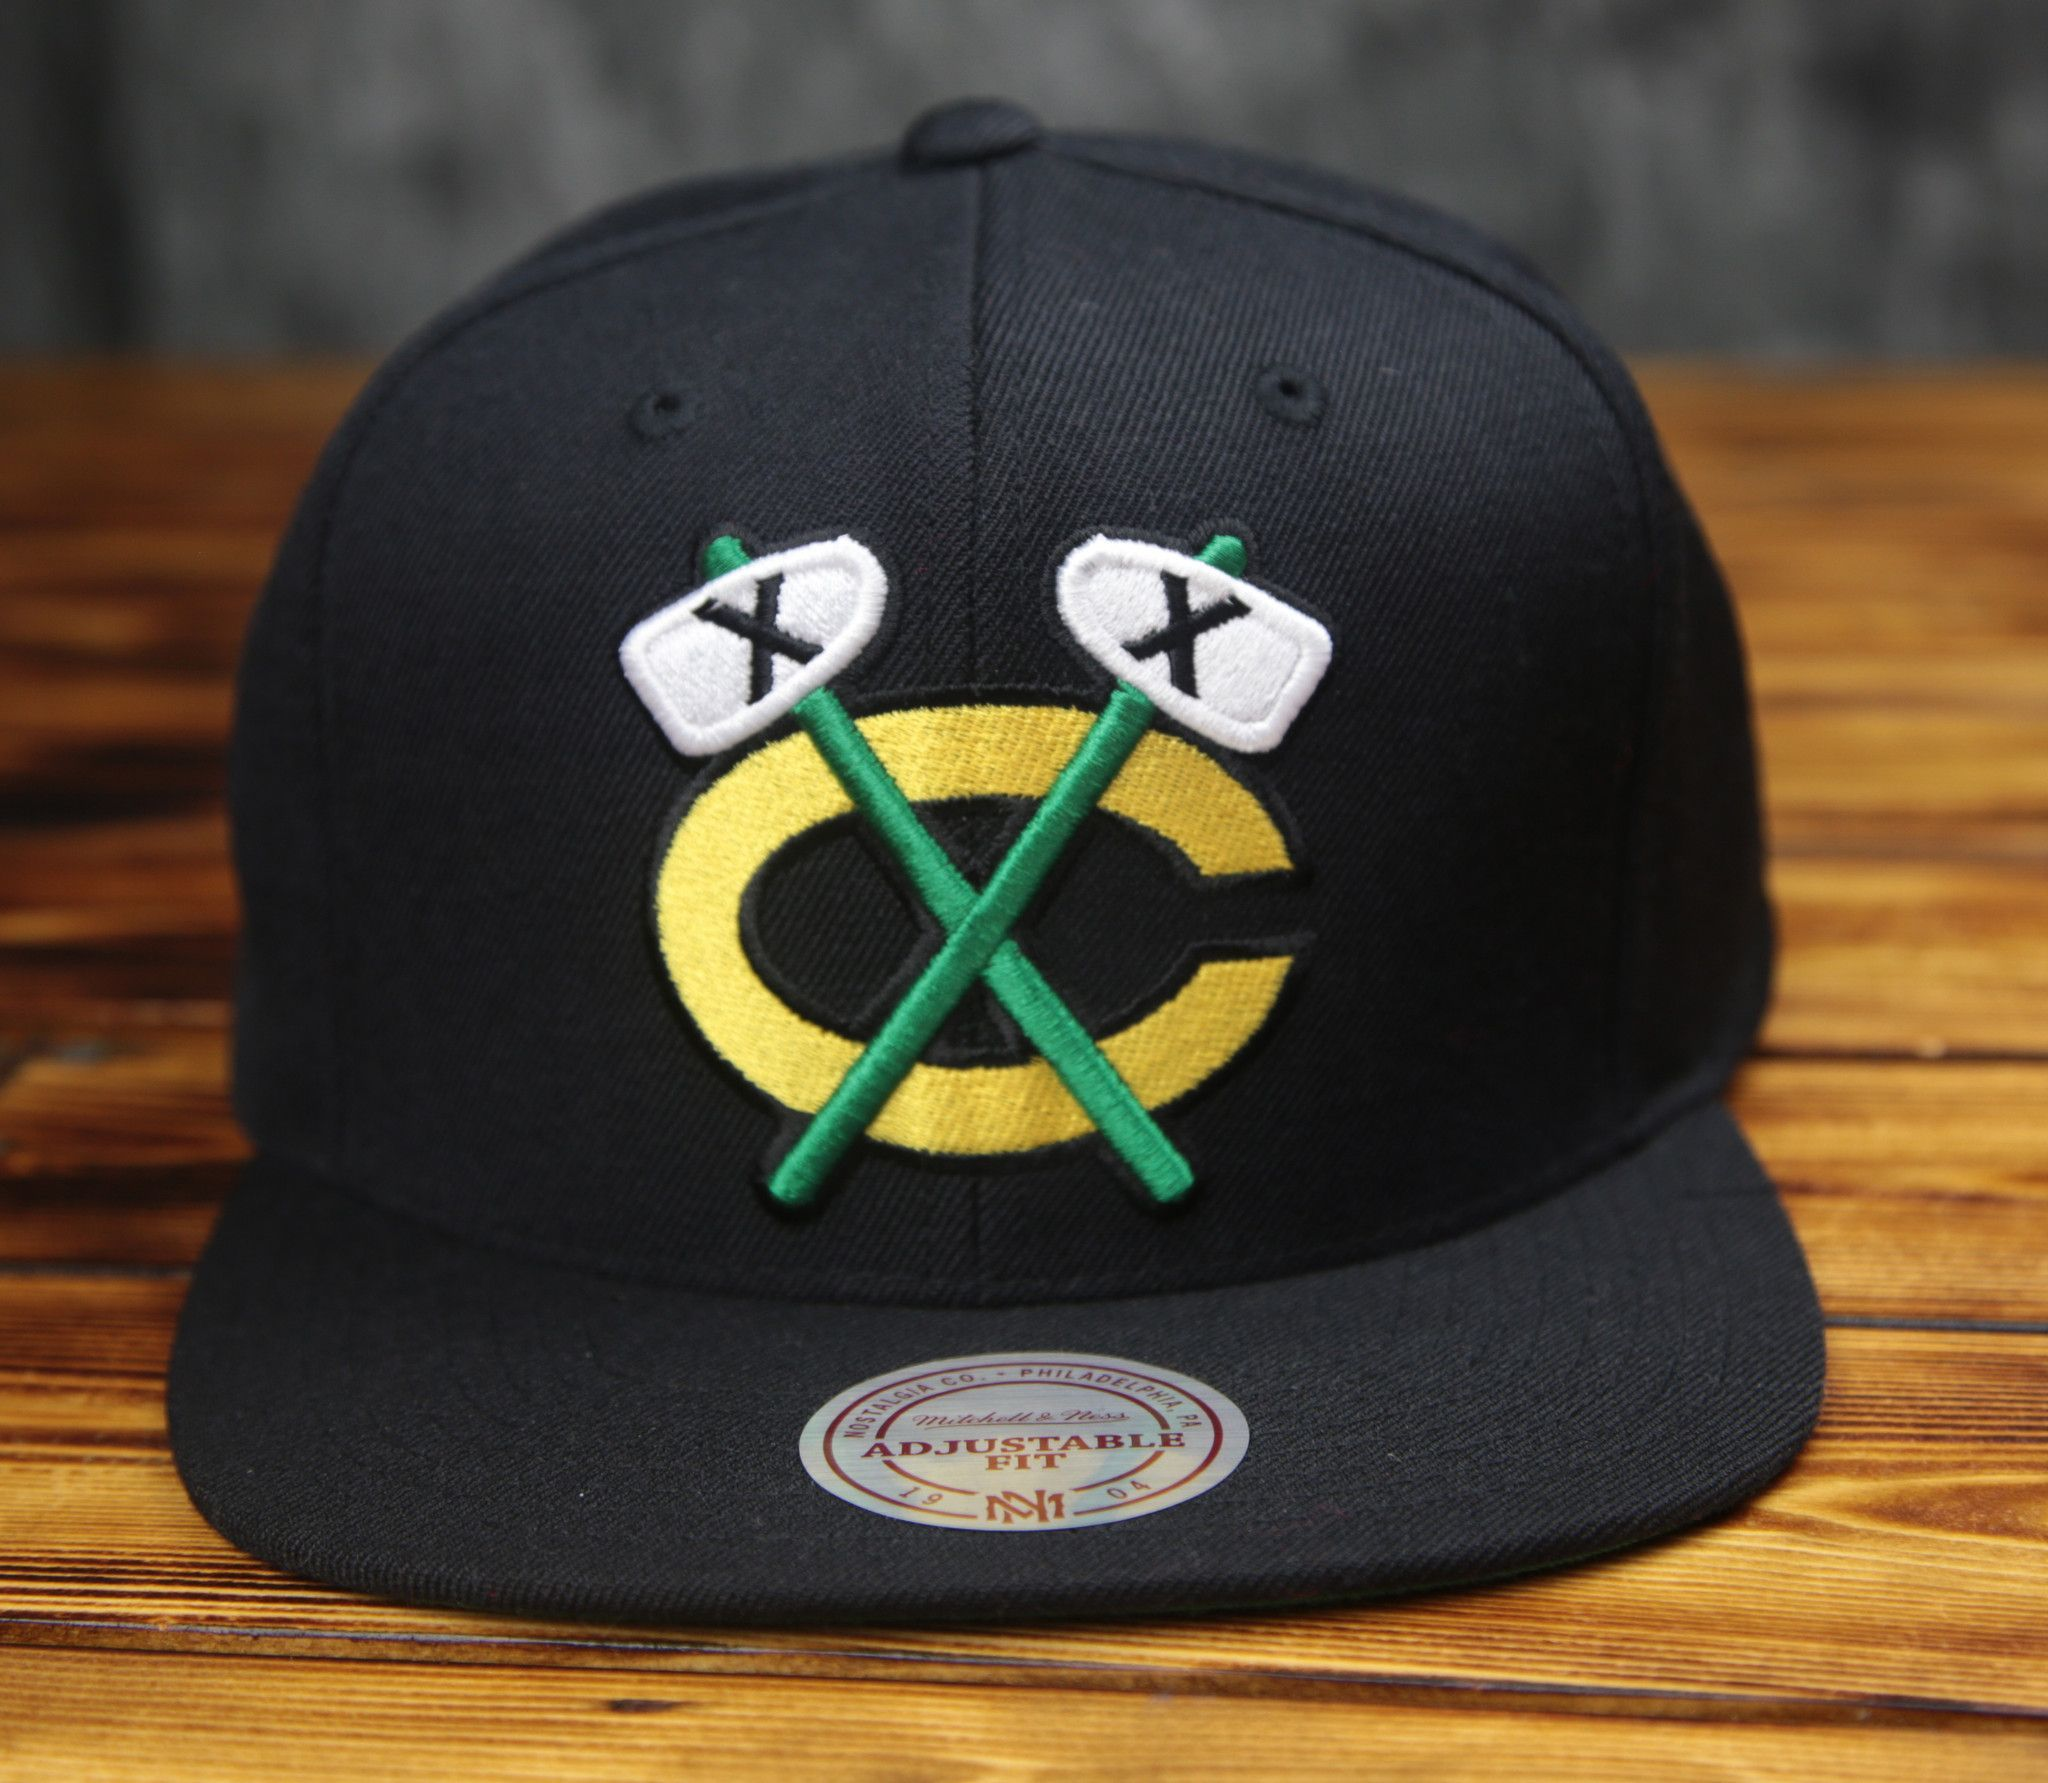 38b6764c4f4 100% wool - High crown retro shape - Solid team color - Raised front  embroidery - Green undervisor - Officially licensed x Mitchell   Ness